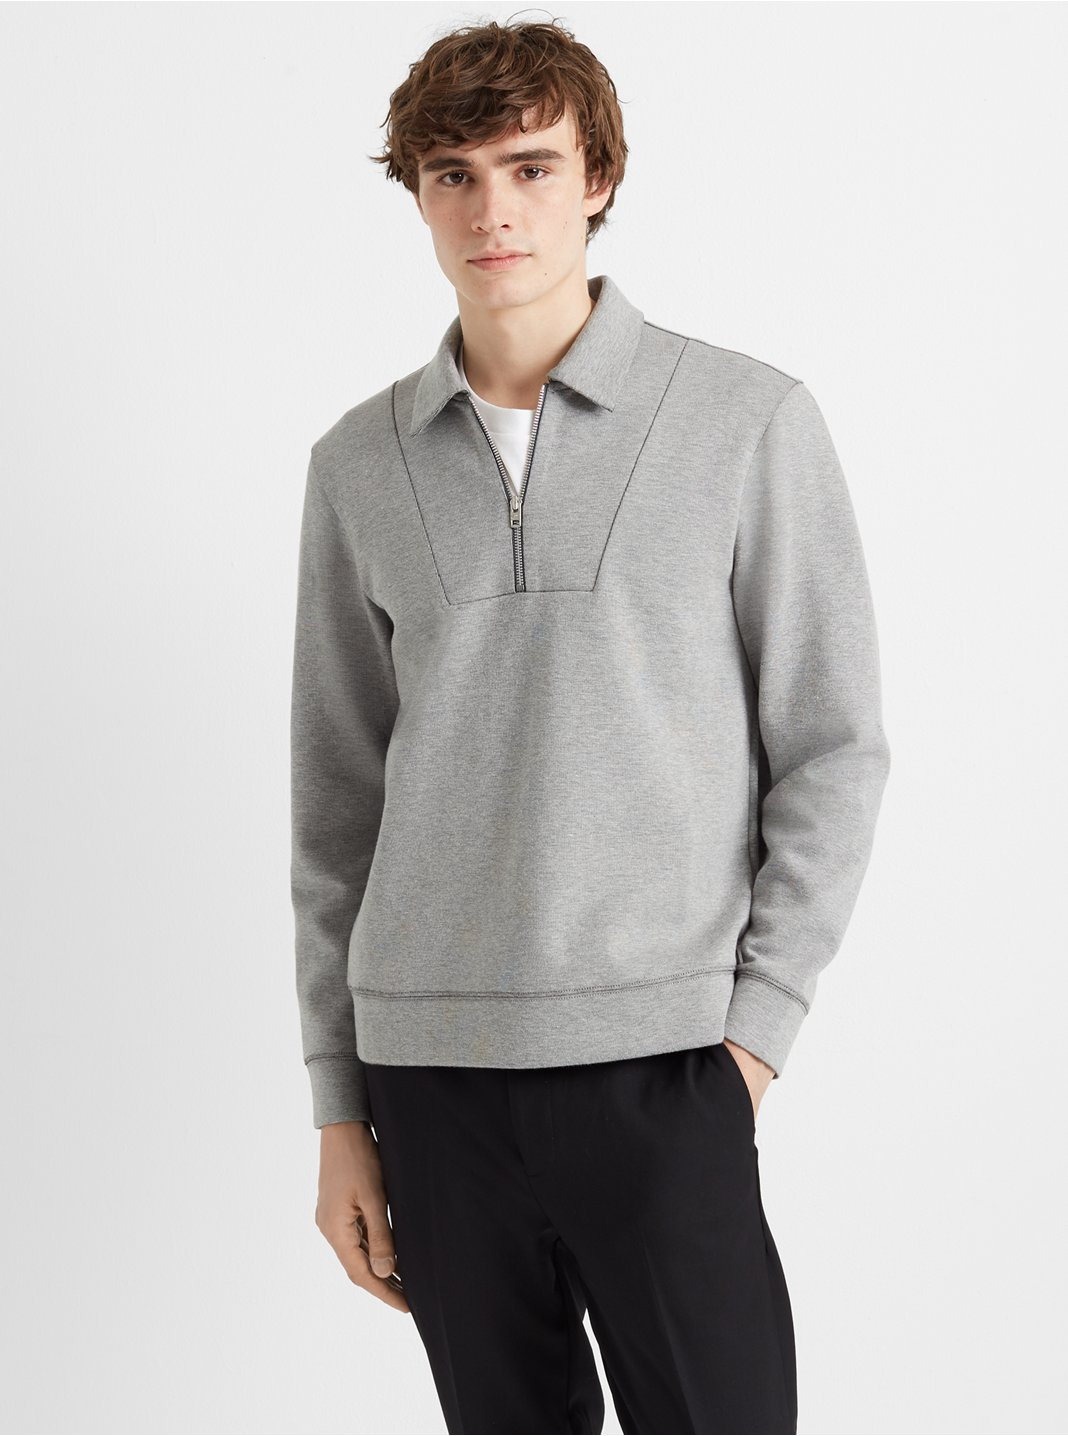 Zip Mock Sweatshirt